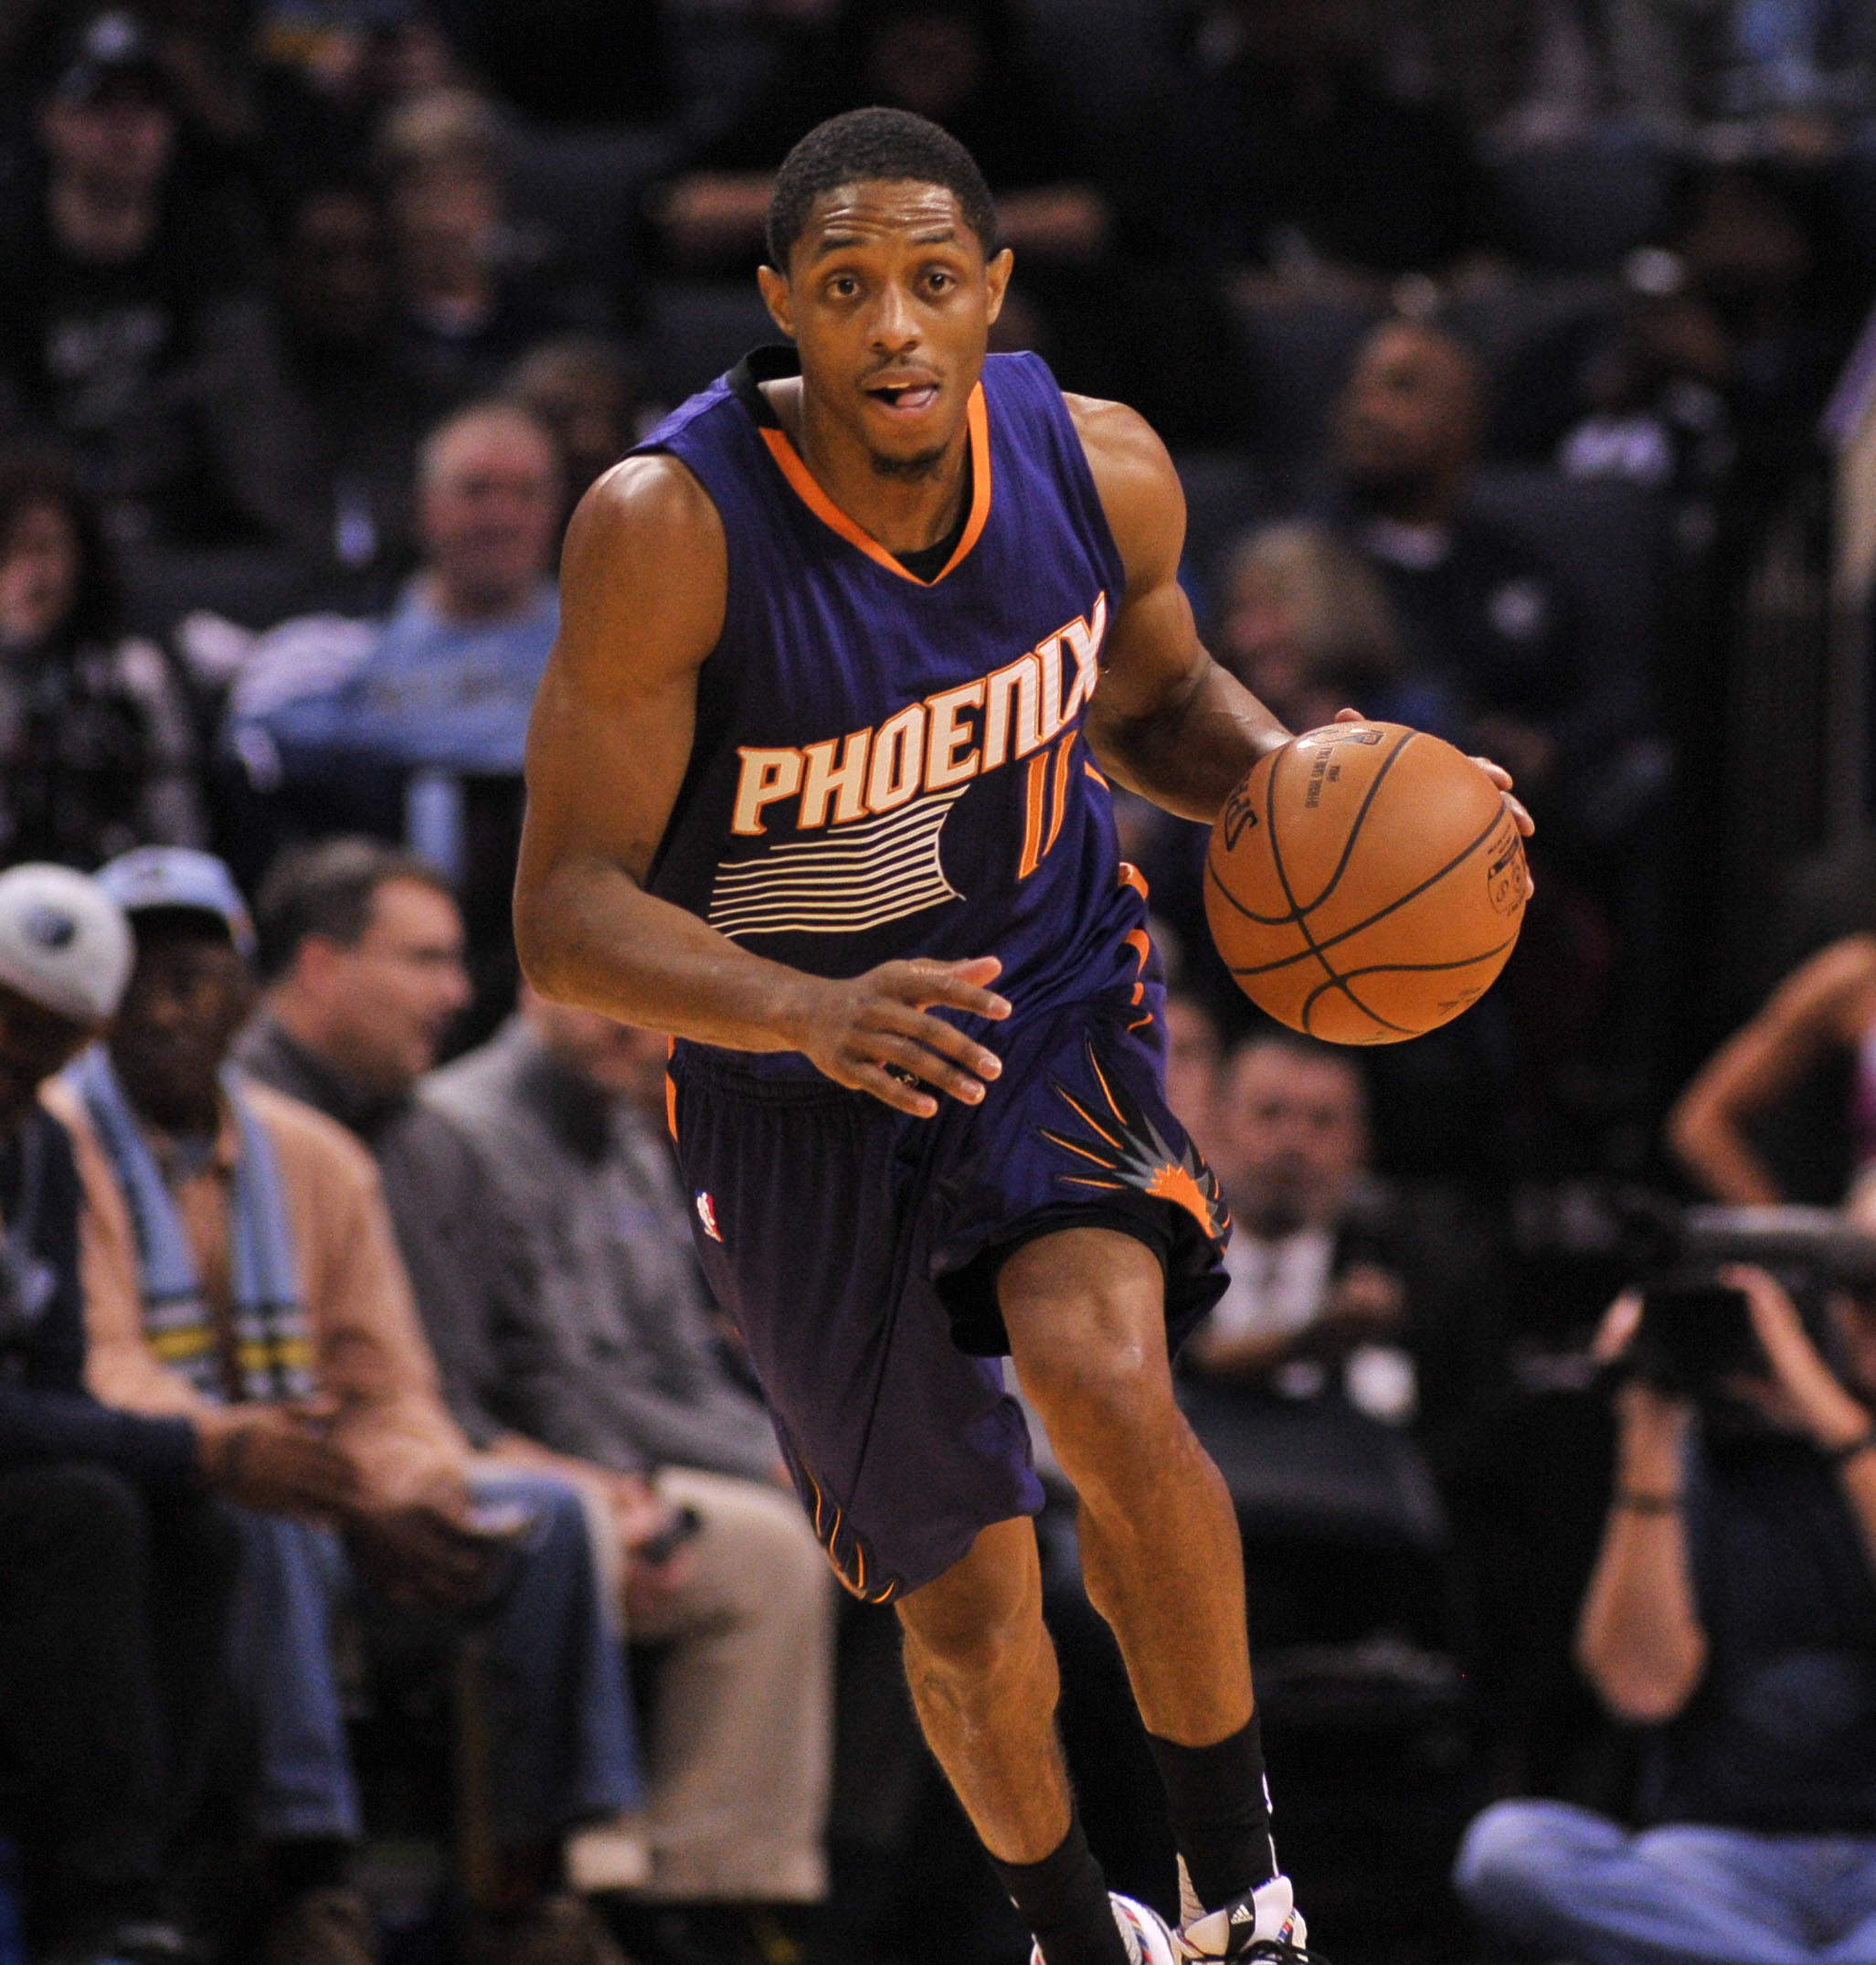 9877126-nba-phoenix-suns-at-memphis-grizzlies-1